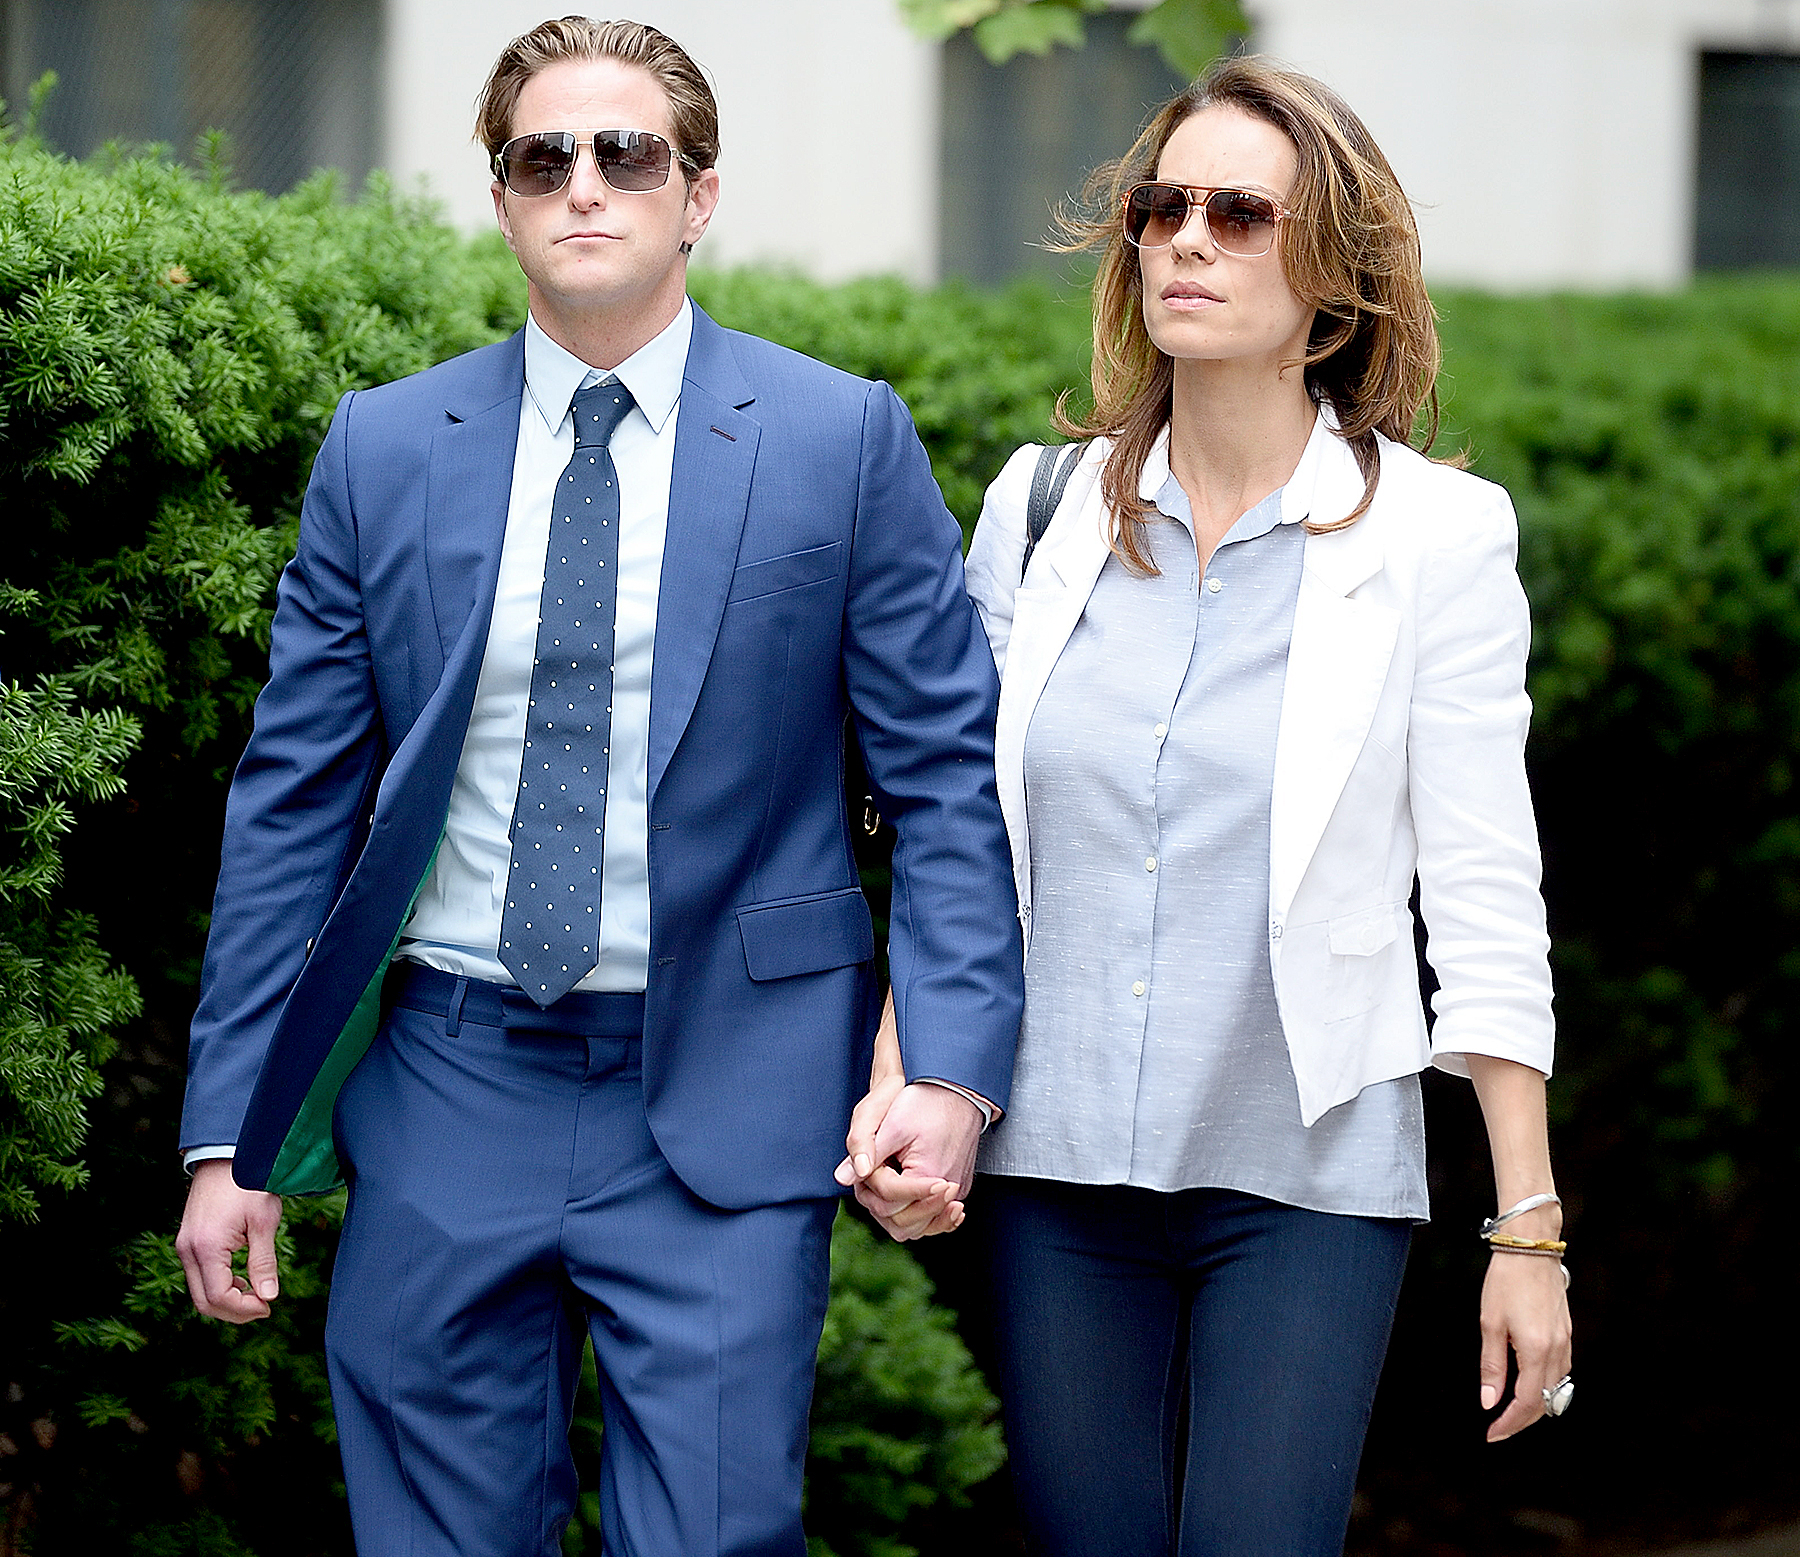 Cameron Douglas with girlfriend Viviane Thibes leave court hand in hand in NYC on June 21, 2017.